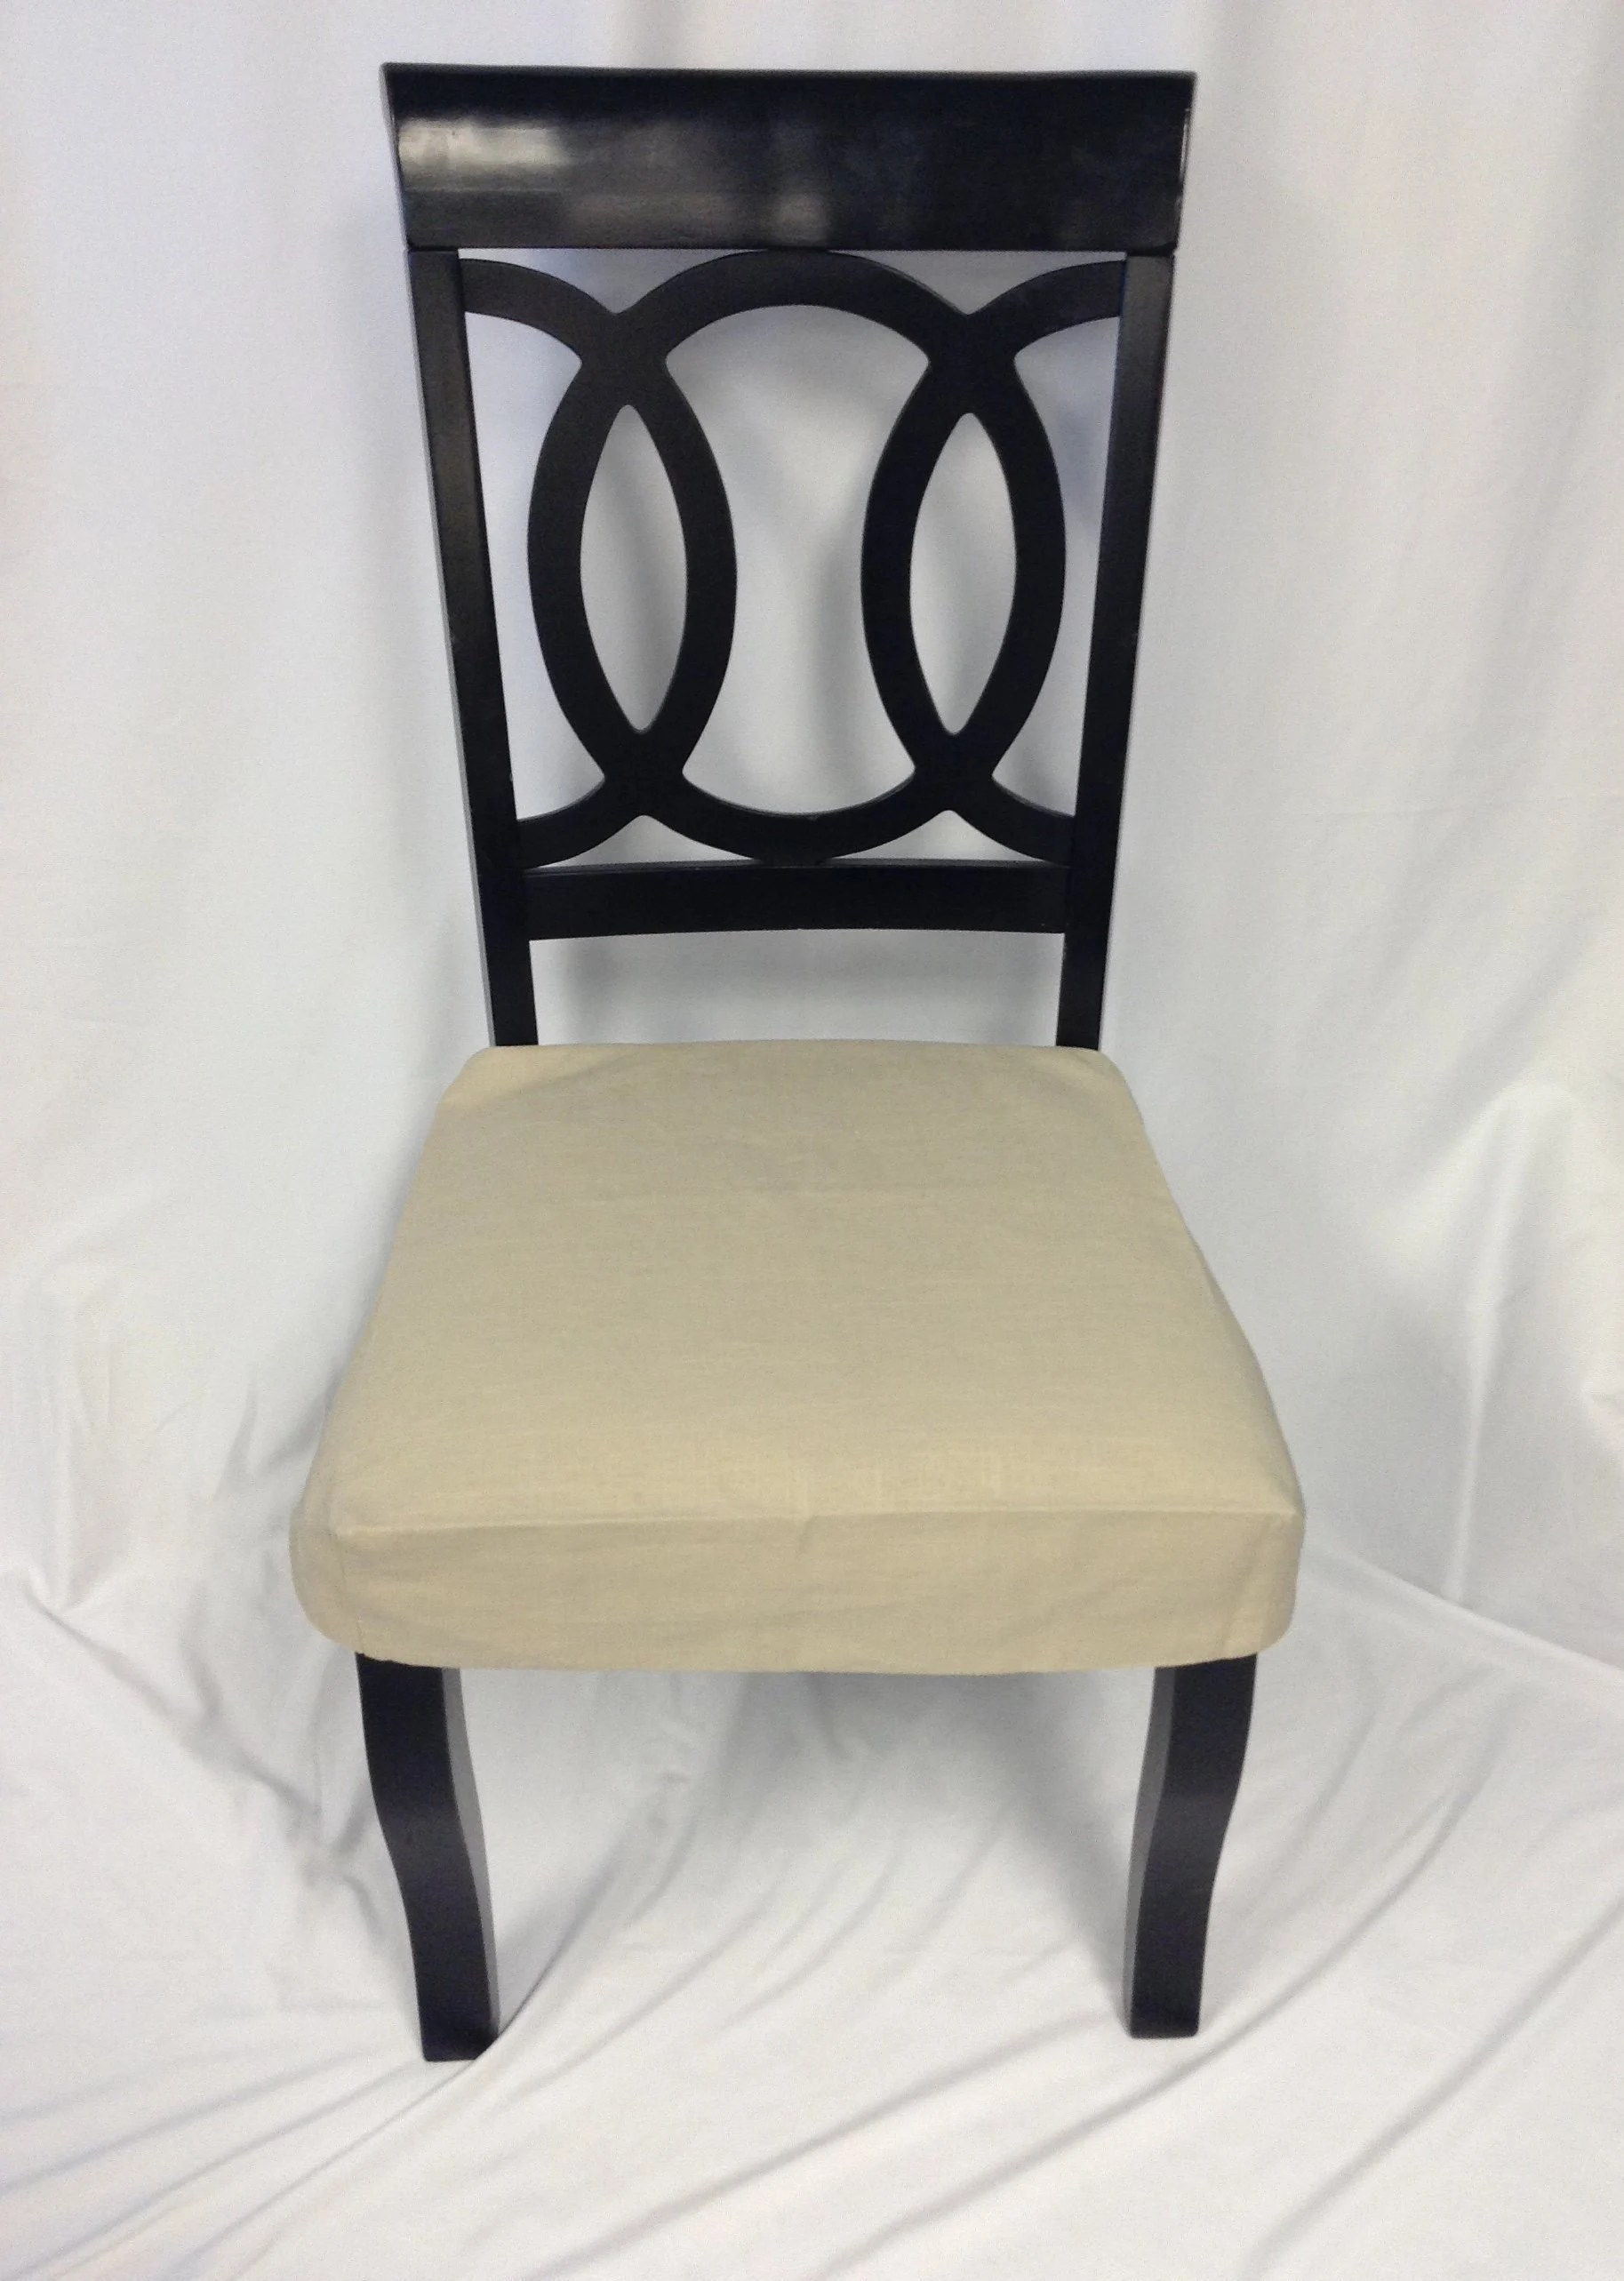 Dining Chair Slipcover Dining Chair Slipcover For Armless Upholstered Chair Fitted And Lined Linen Dining Chair Apron With Ties Removable Covers Lined Slipcover